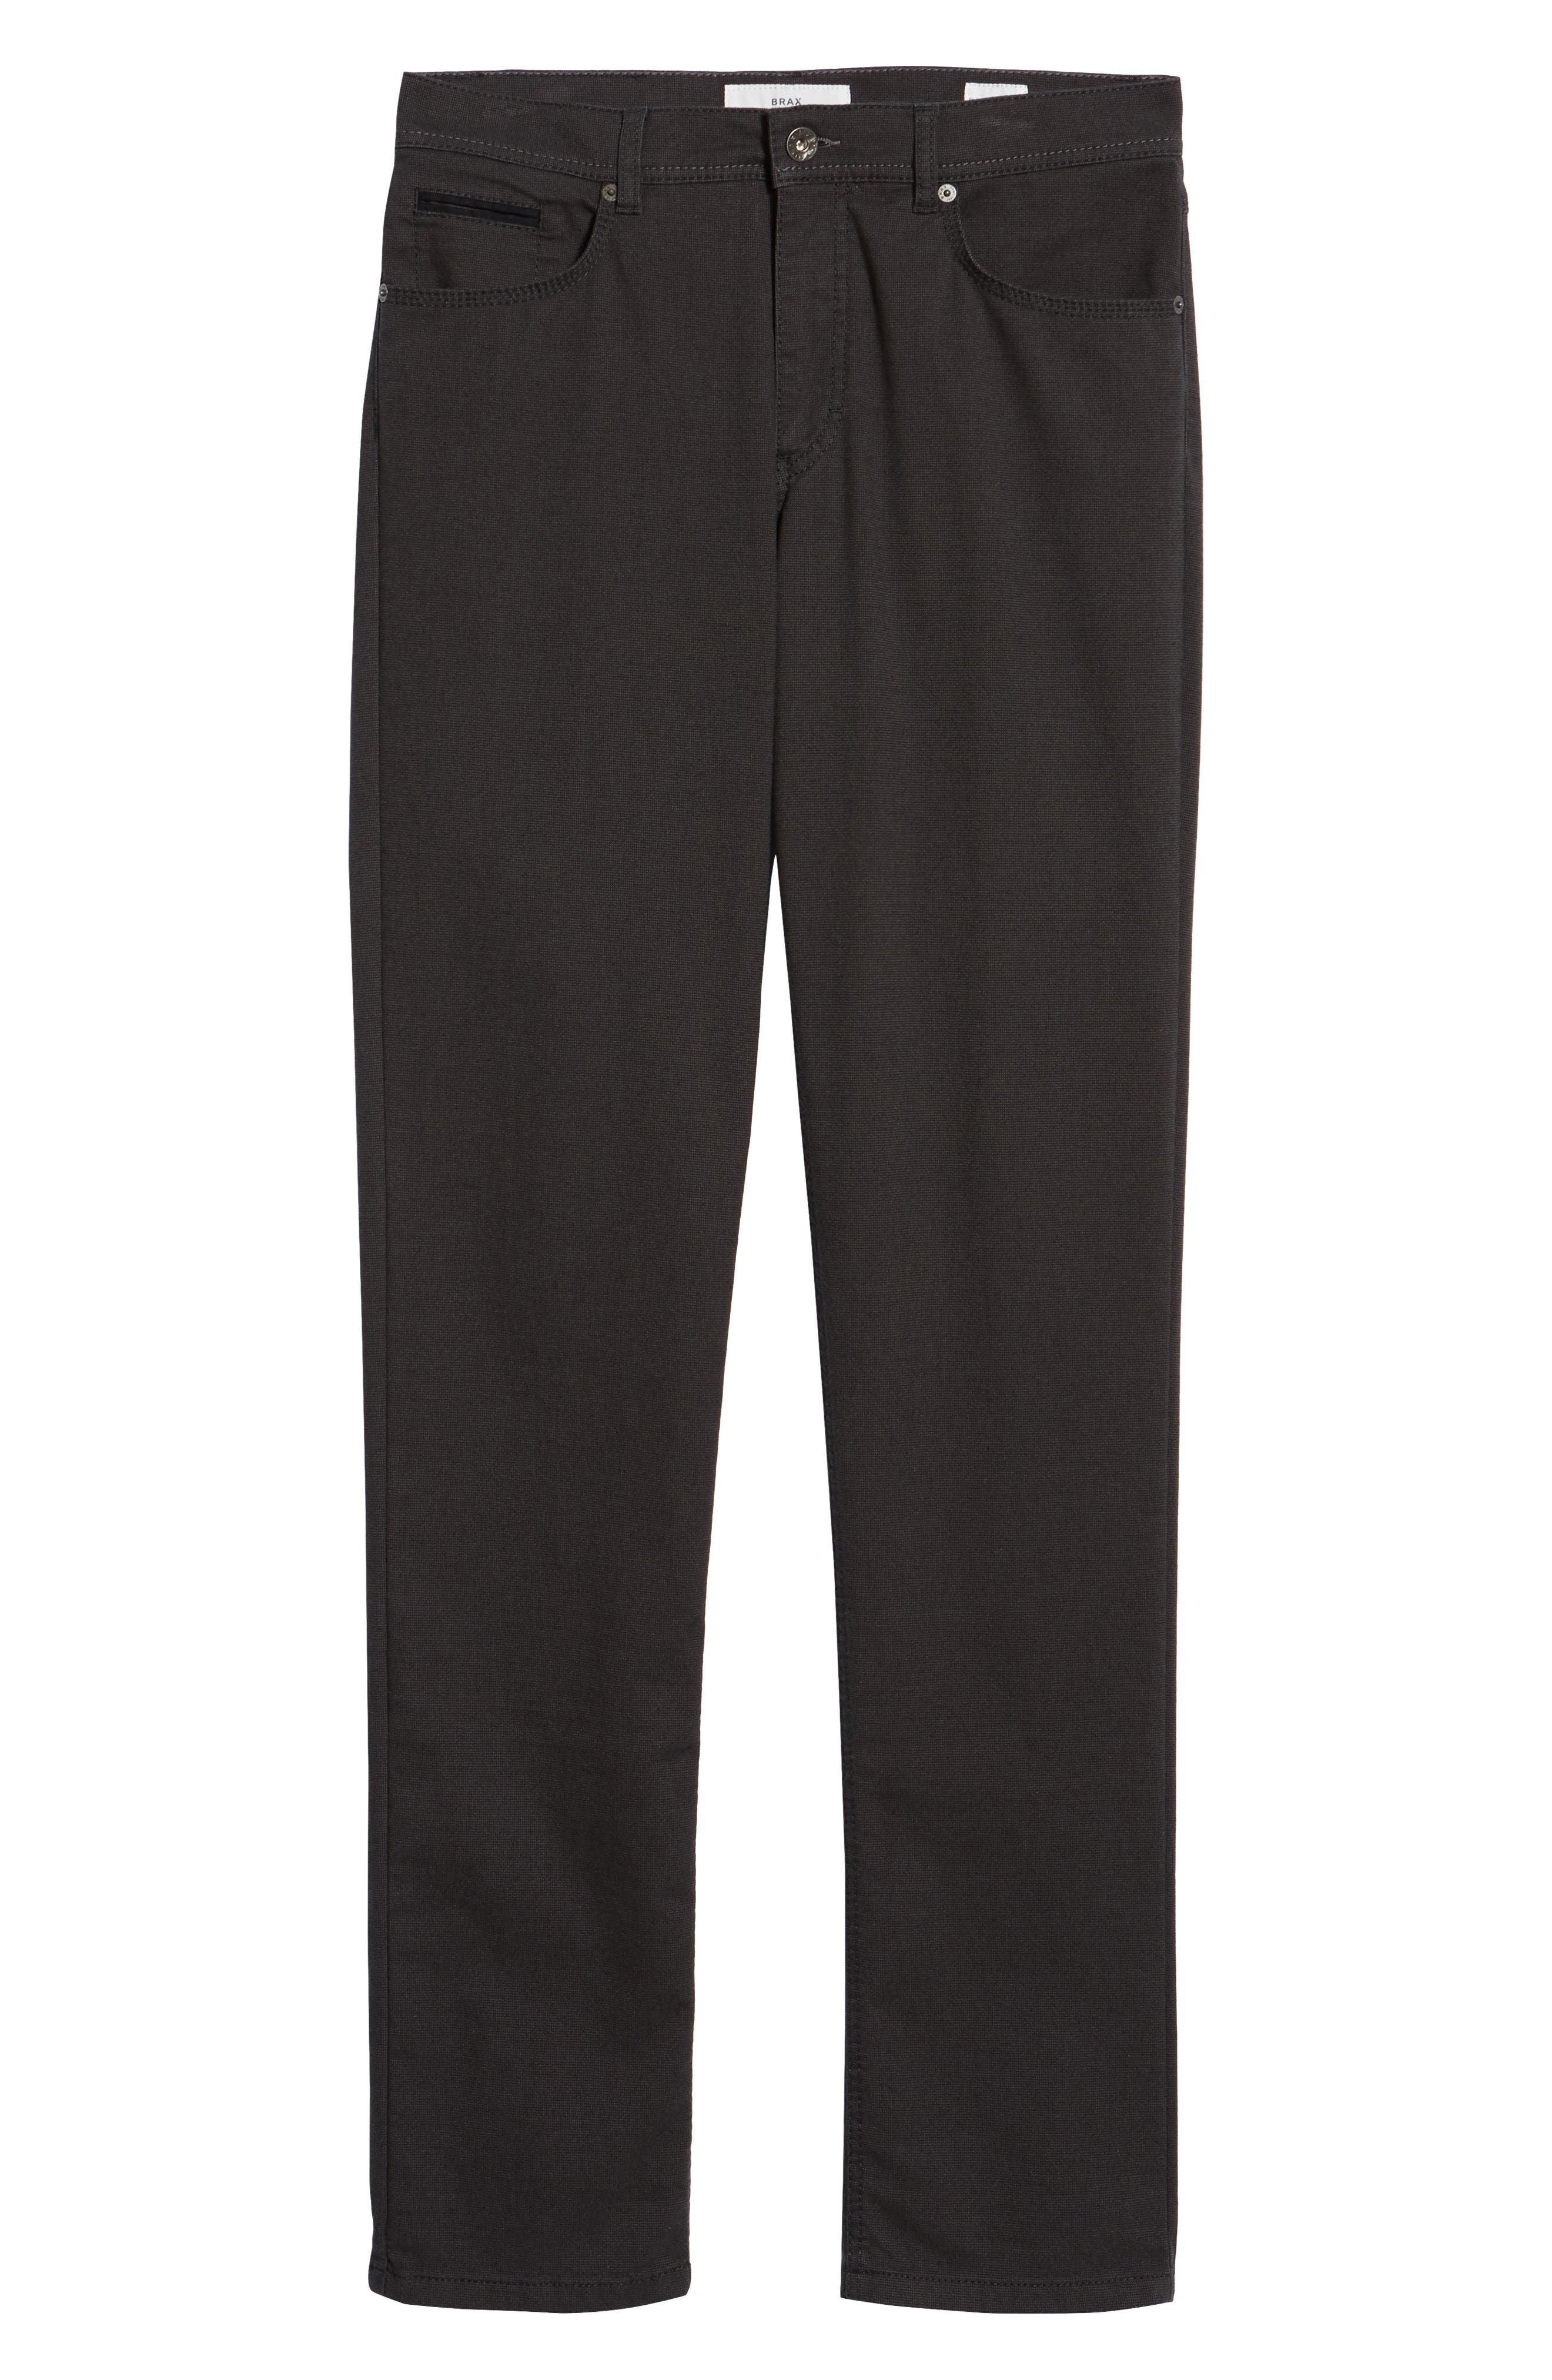 Woolook Classic Fit Flat Front Pants,                             Alternate thumbnail 6, color,                             ANTHRA